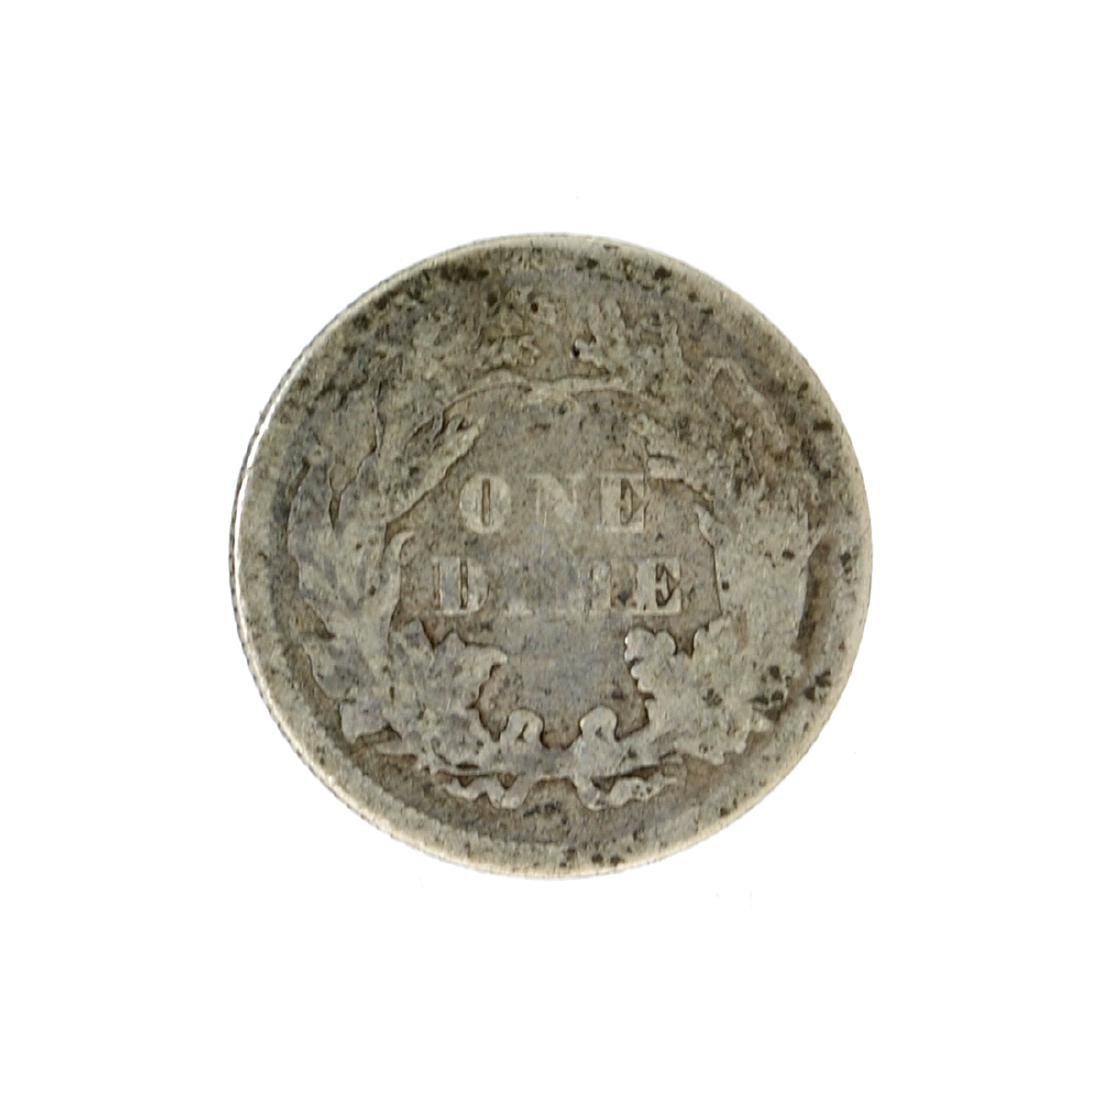 1876 Liberty Seated Dime Coin - 2